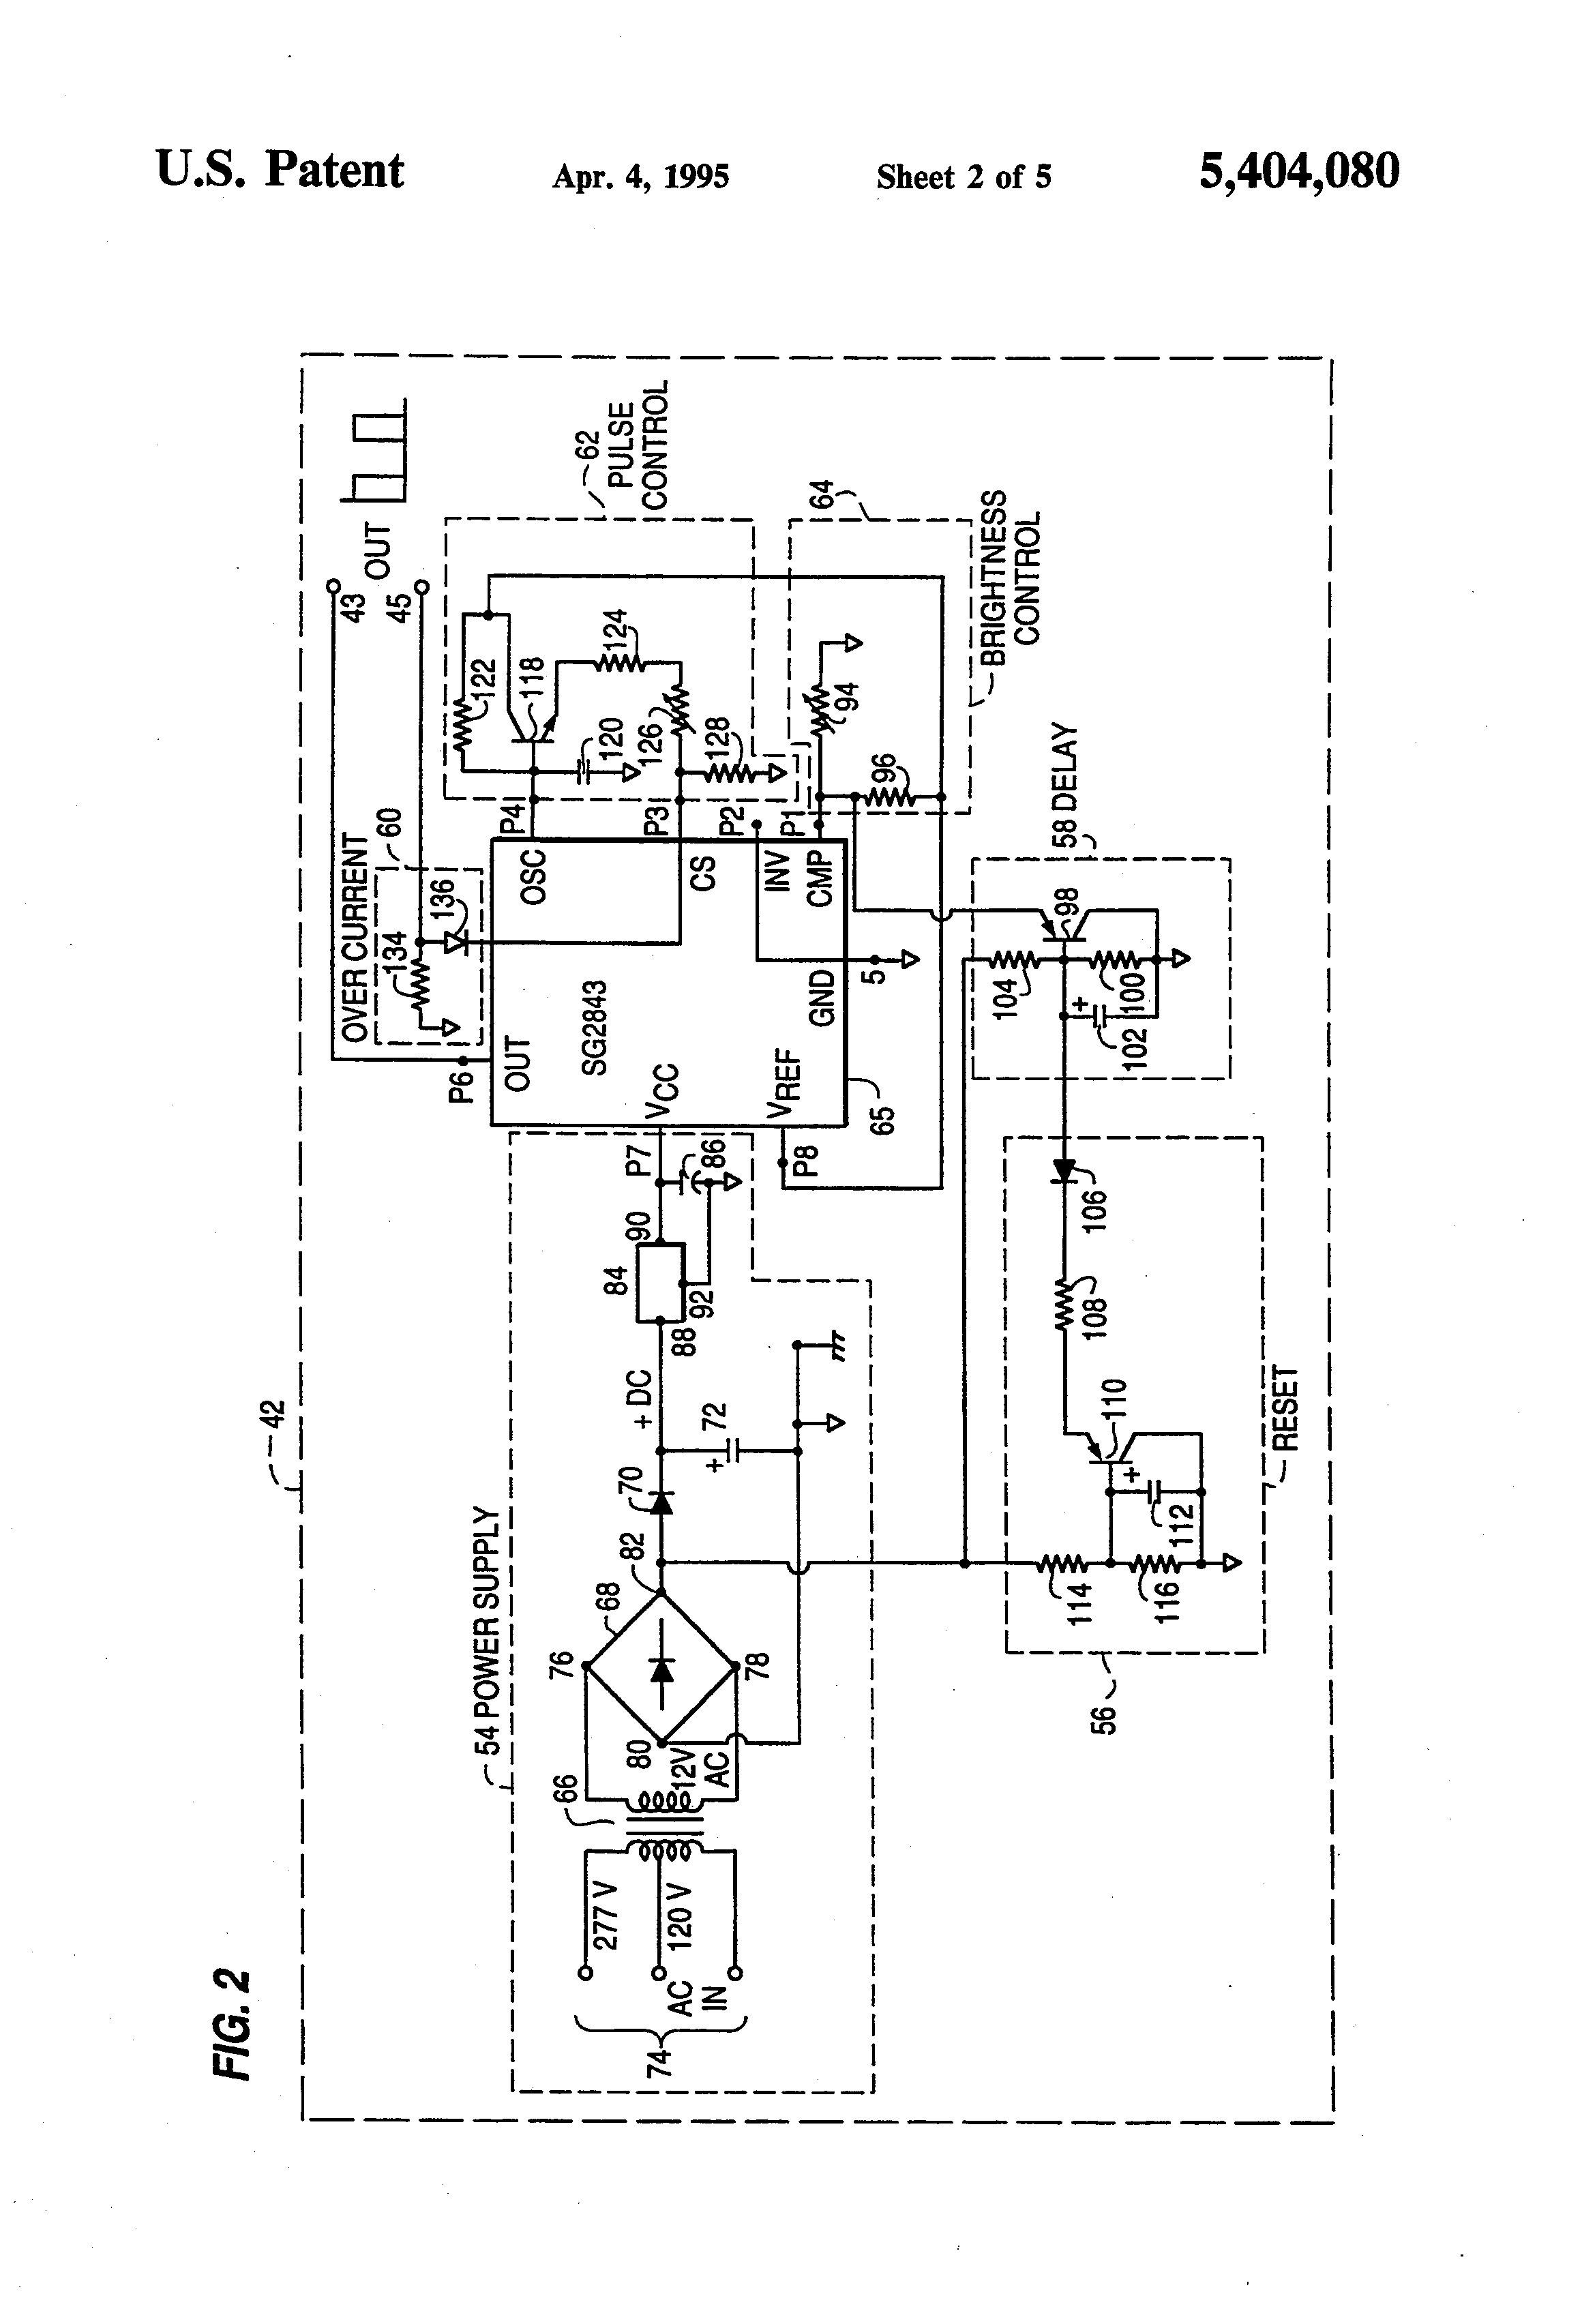 brightness control for small lamps circuit